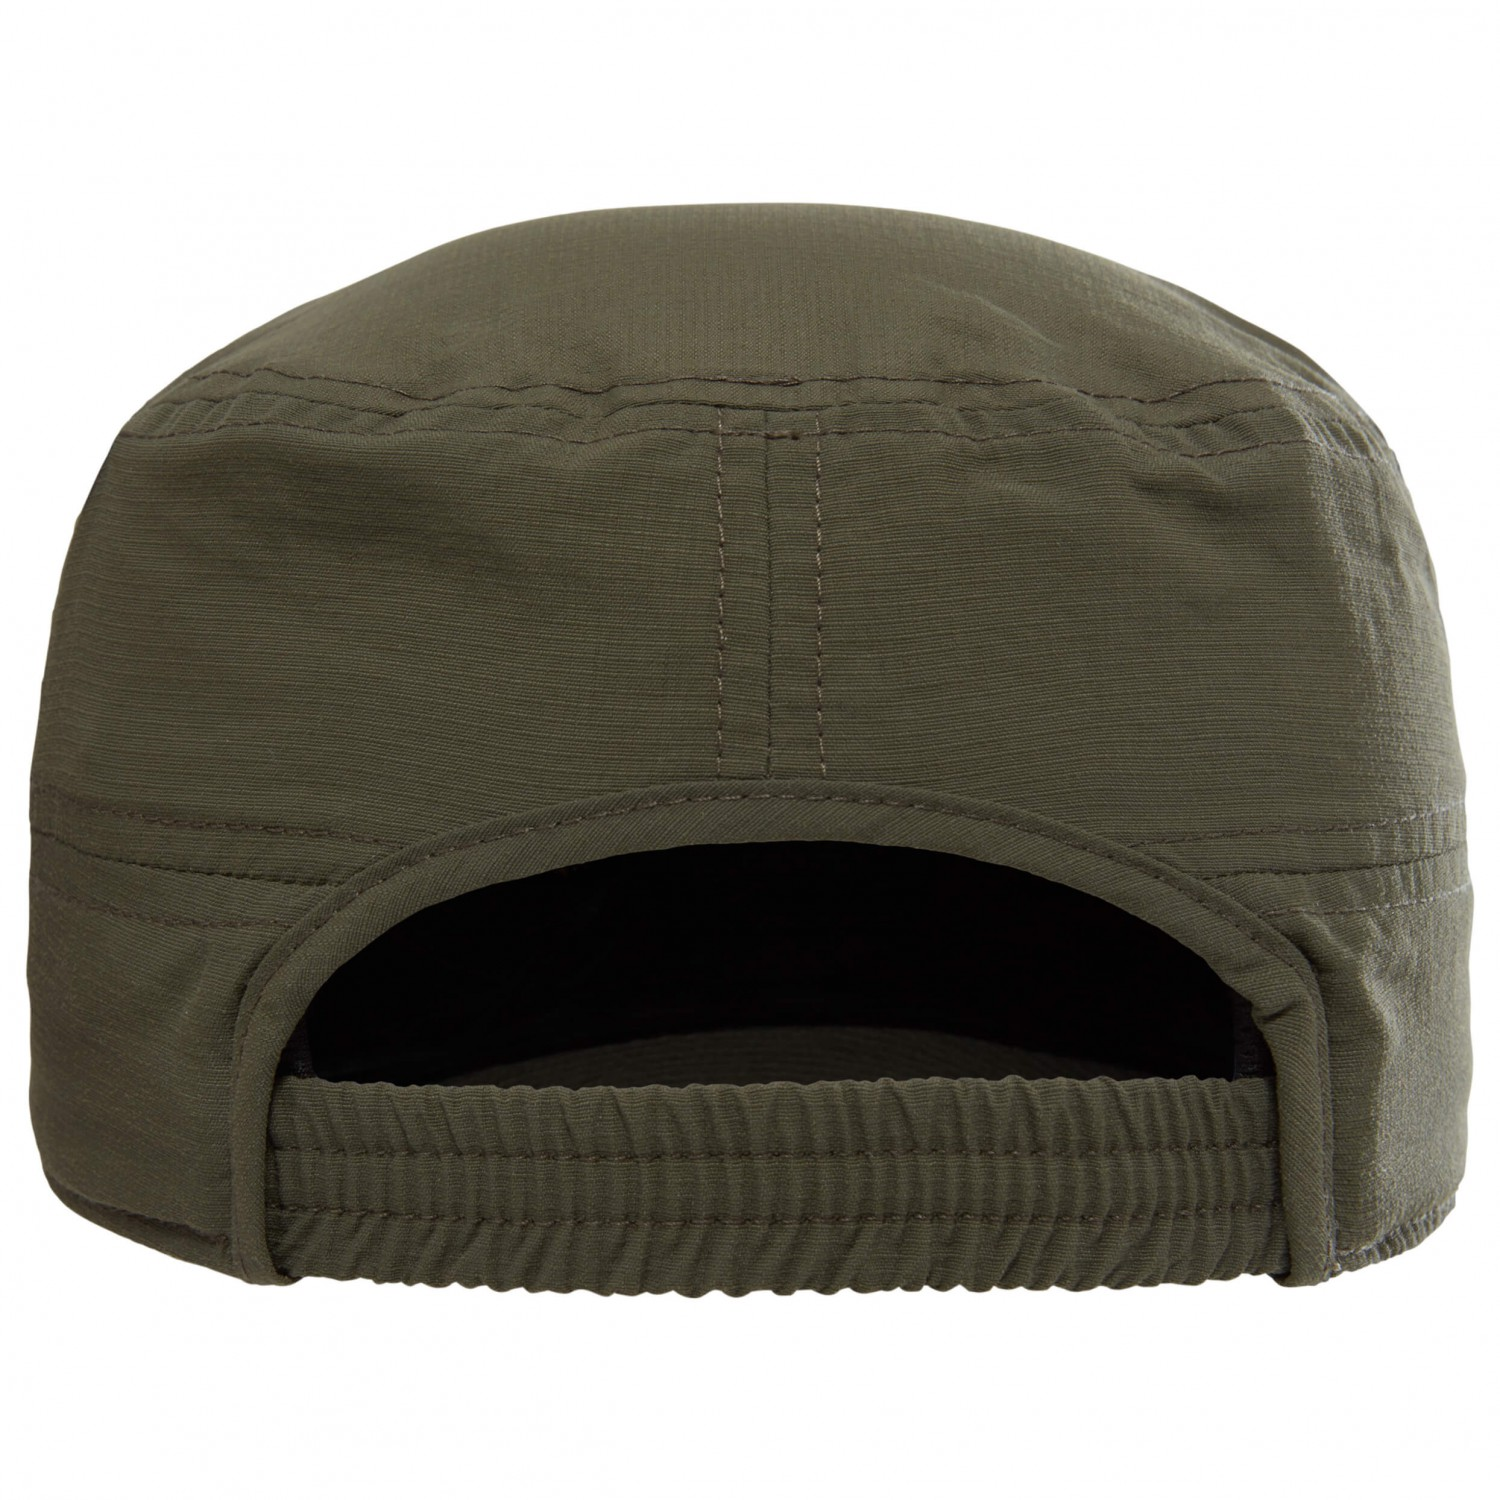 ed9577931 The North Face Horizon Military Hat - Cap Women's | Buy online ...